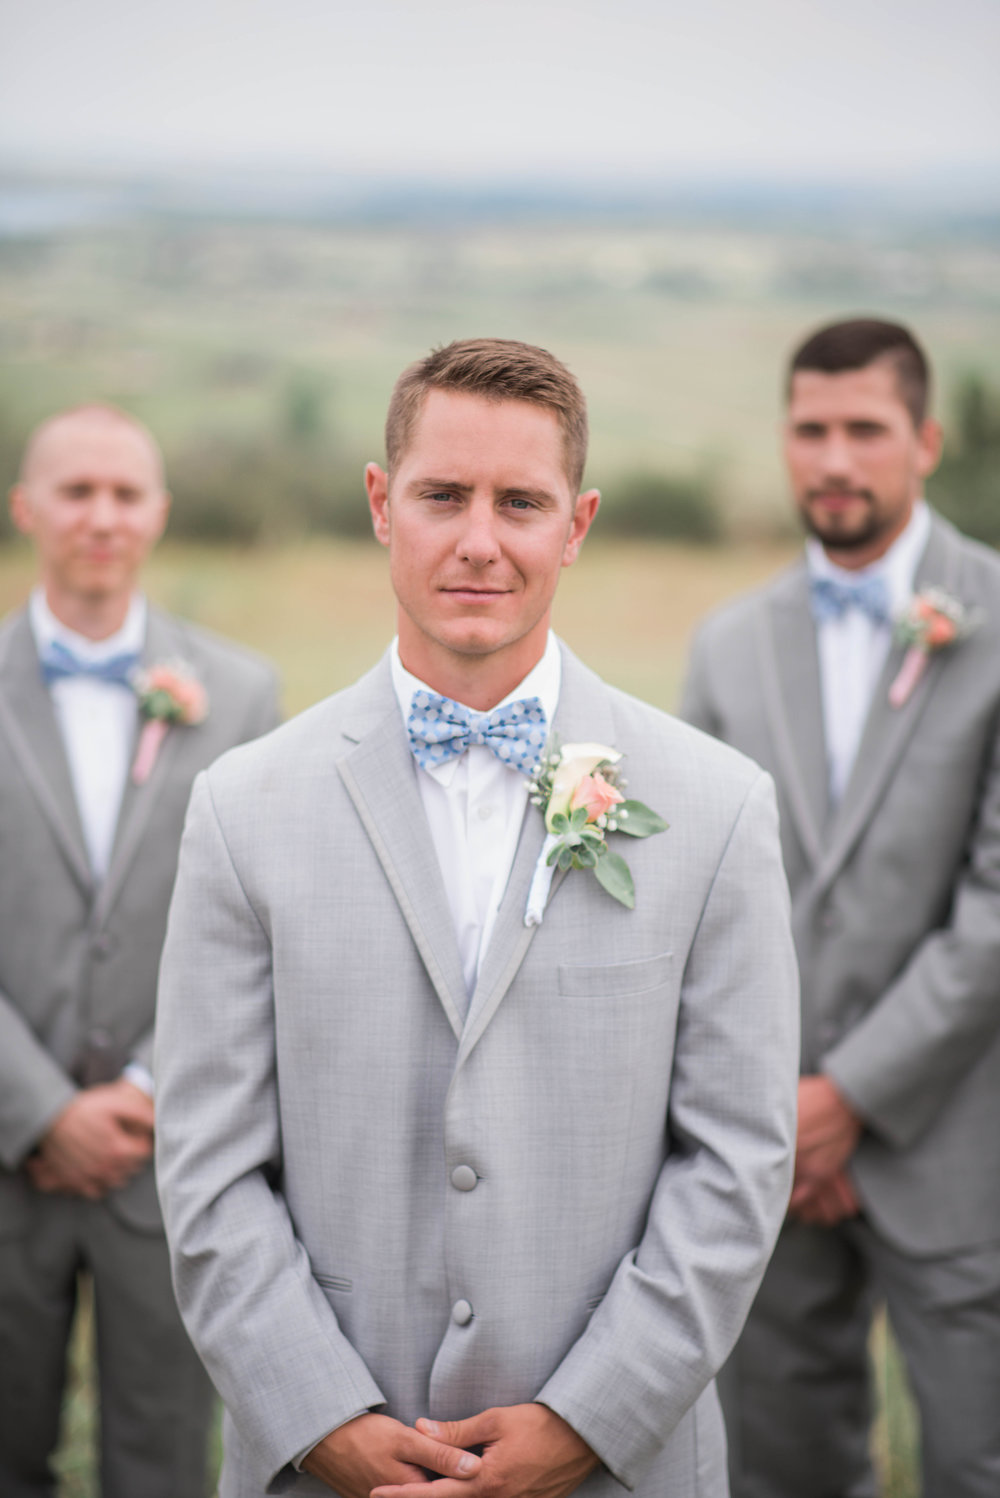 groomsmen, rustic wedding details, colorado wedding, colorado wedding photographer, denver wedding photographer, downtown denver wedding photographer, rocky mountain wedding photographer, intimate colorado wedding photographer, mountain elopement photographer